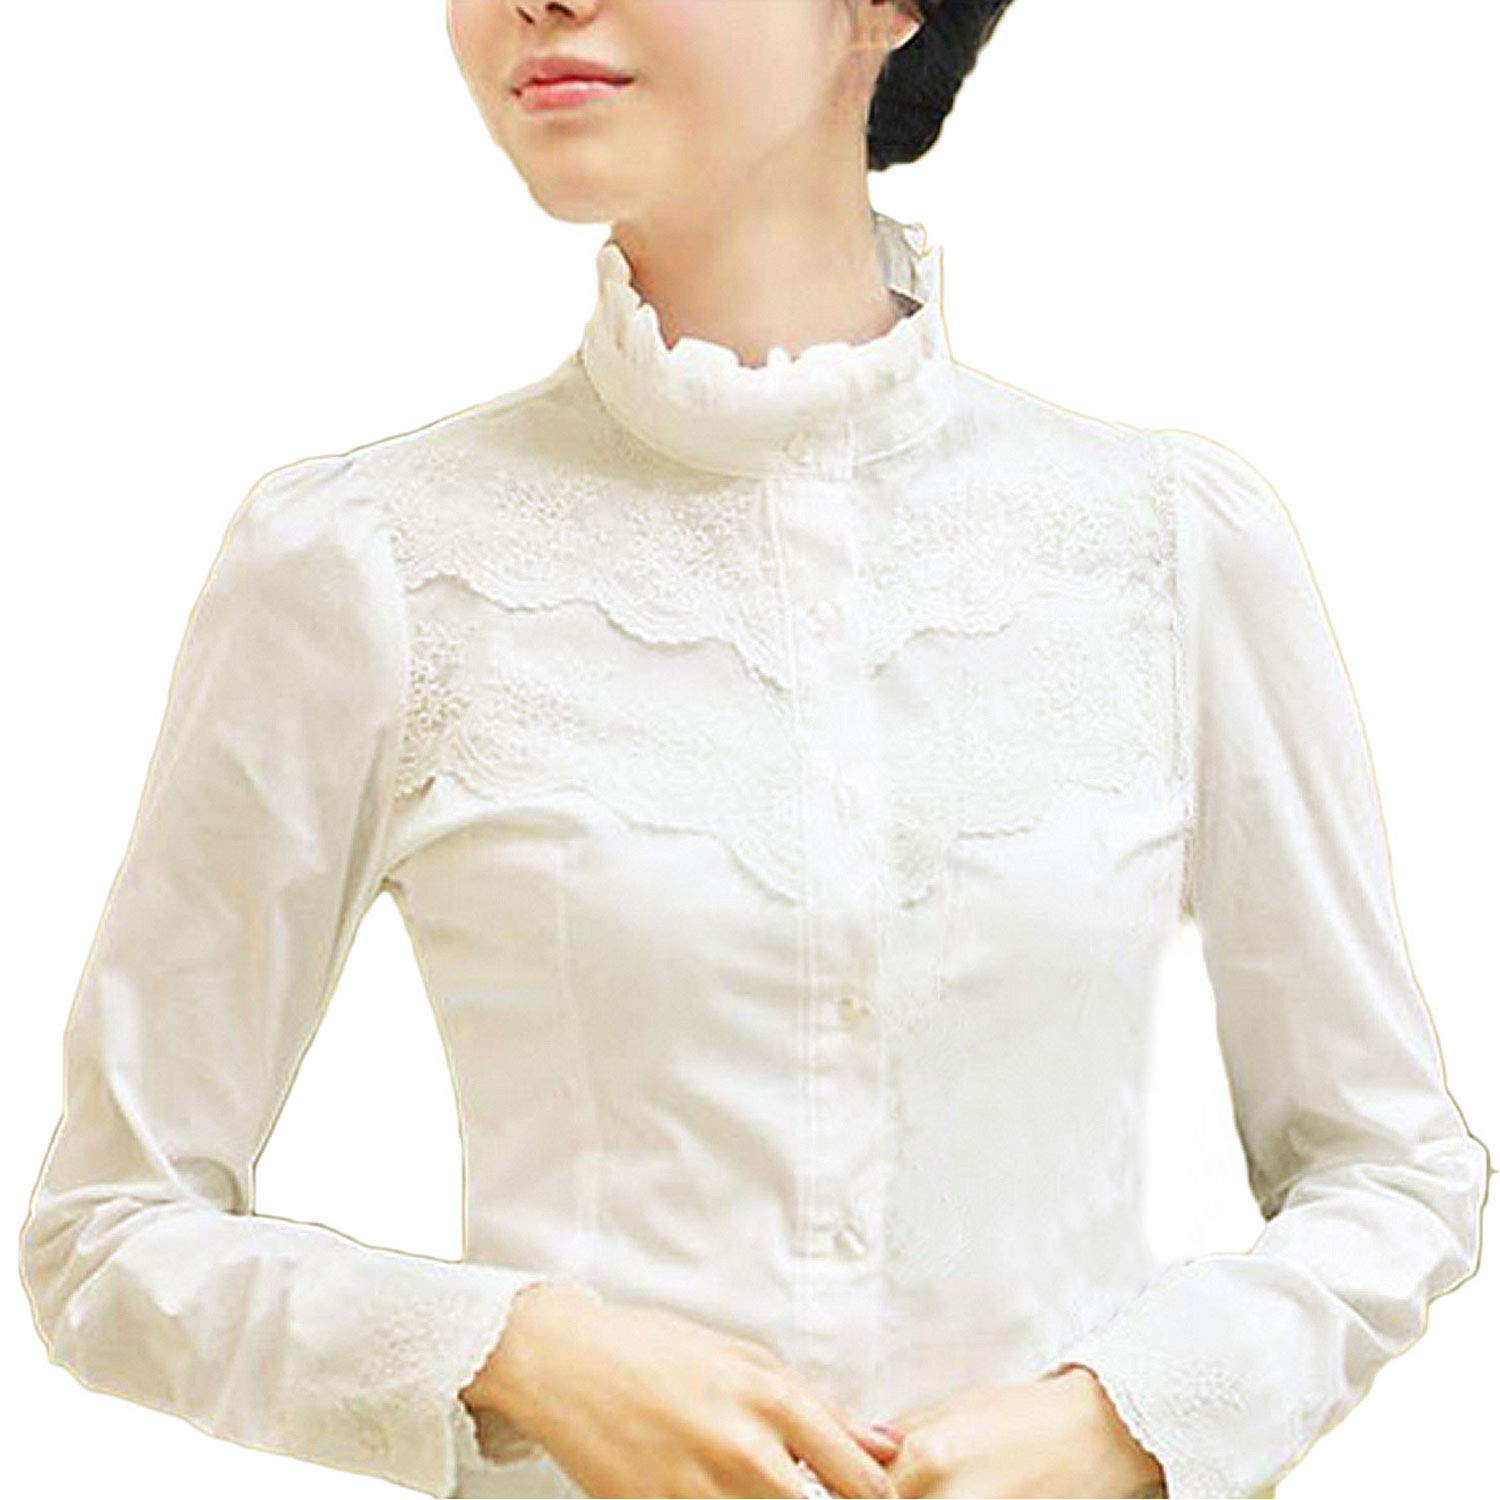 Edwardian Blouses | White & Black Lace Blouses & Sweaters Nonbrand Winter Office Long Sleeve Shirt Lace Top Womens Vintage Blouse Ladies Victorian Tops £15.42 AT vintagedancer.com